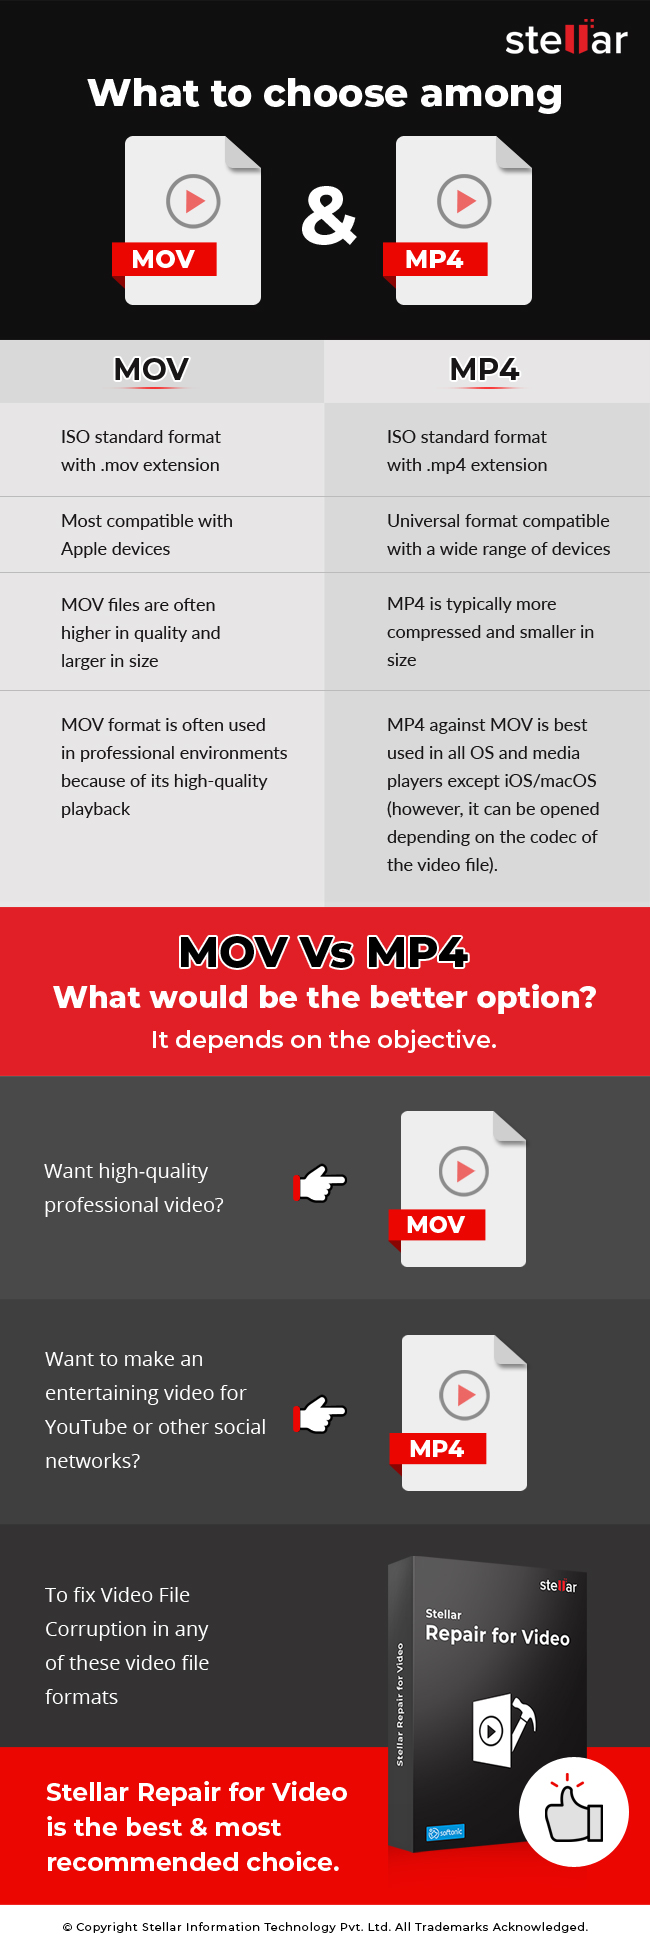 What to choose among MOV & MP4 – Best Choice?